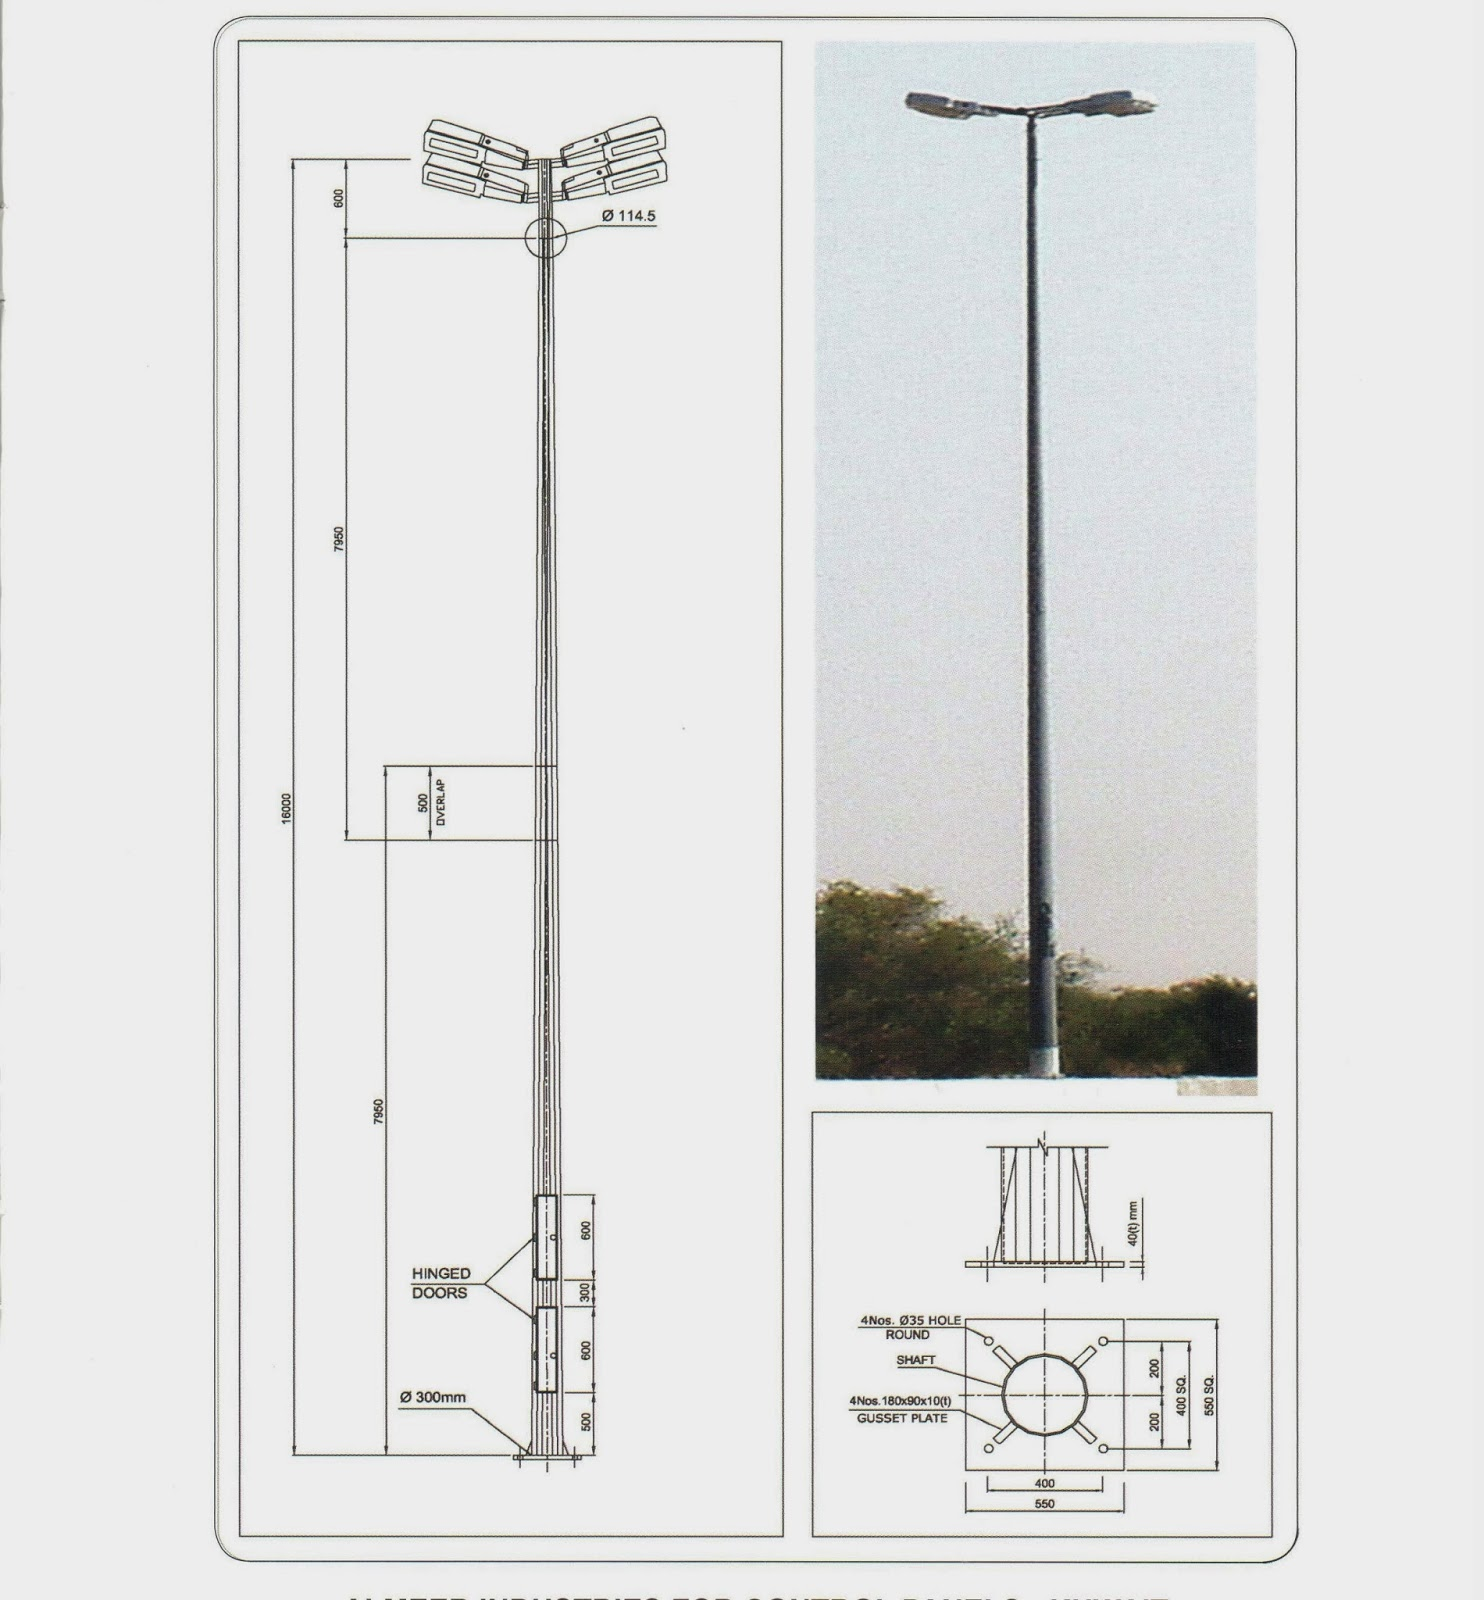 Light Pole Definition: OIL AND GAS ELECTRICAL AND INSTRUMENTATION ENGINEERING: 16